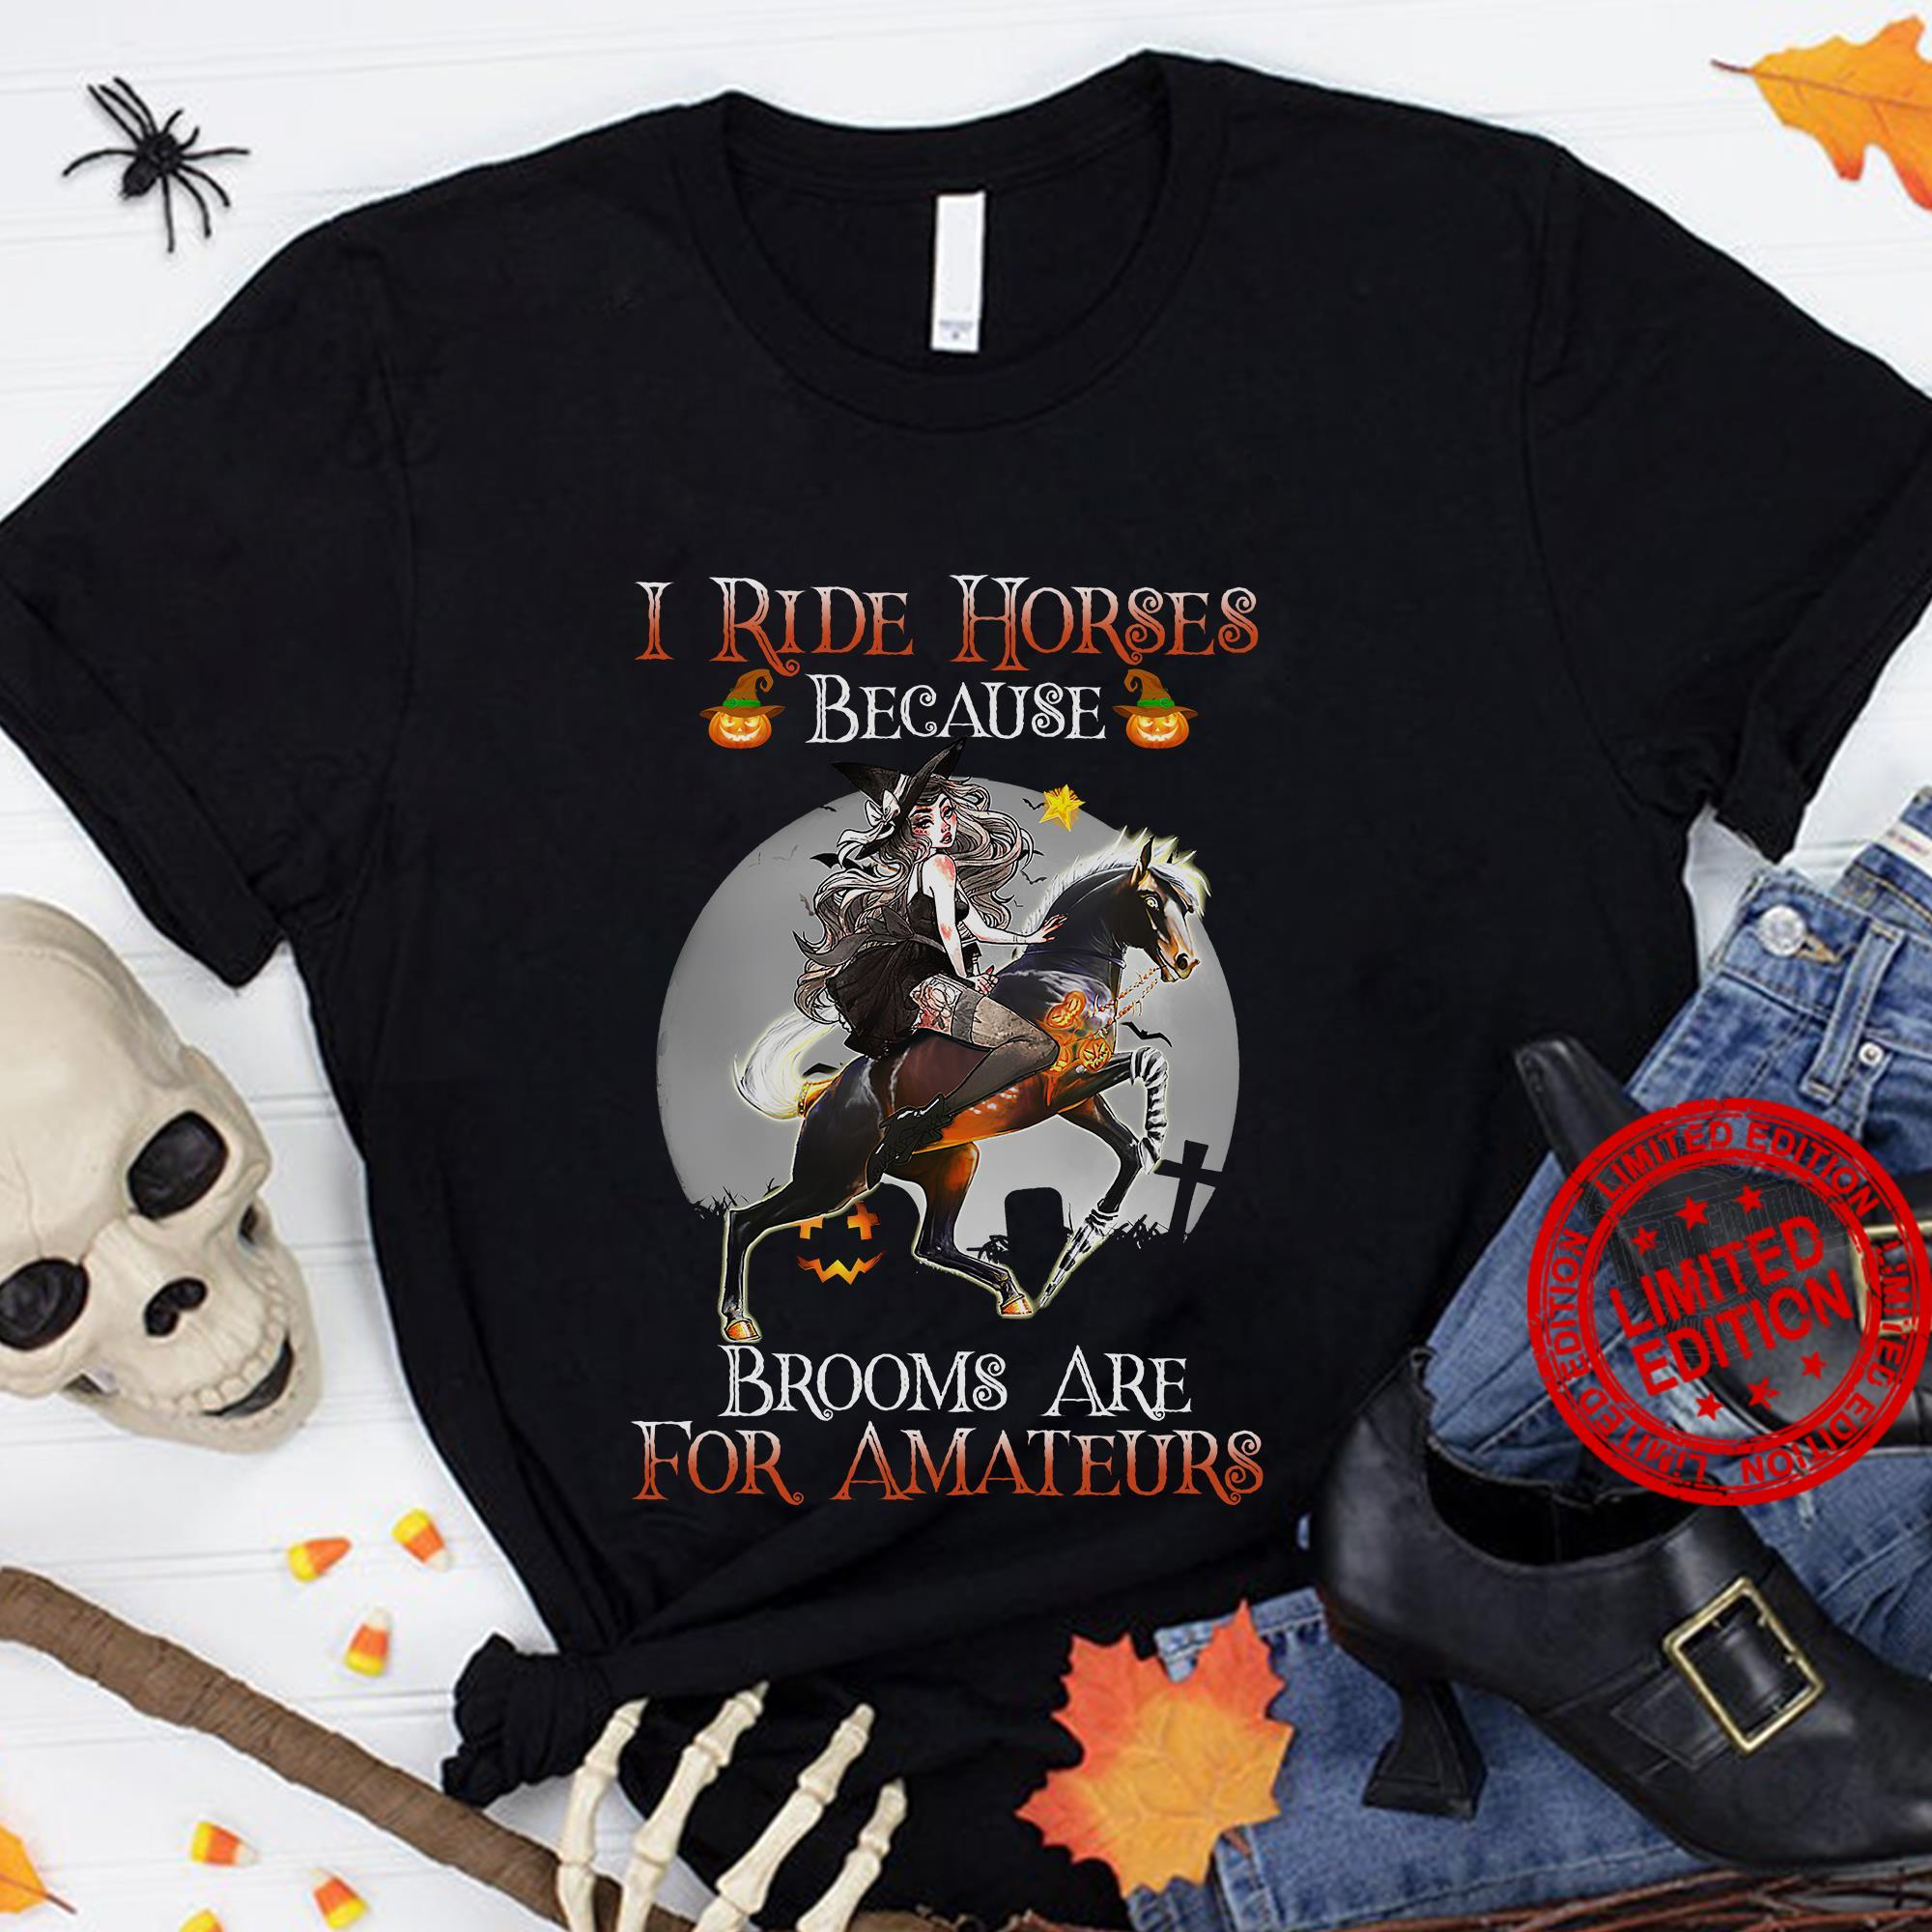 I Ride Horses Because Brooms Are For Amateurs Shirt